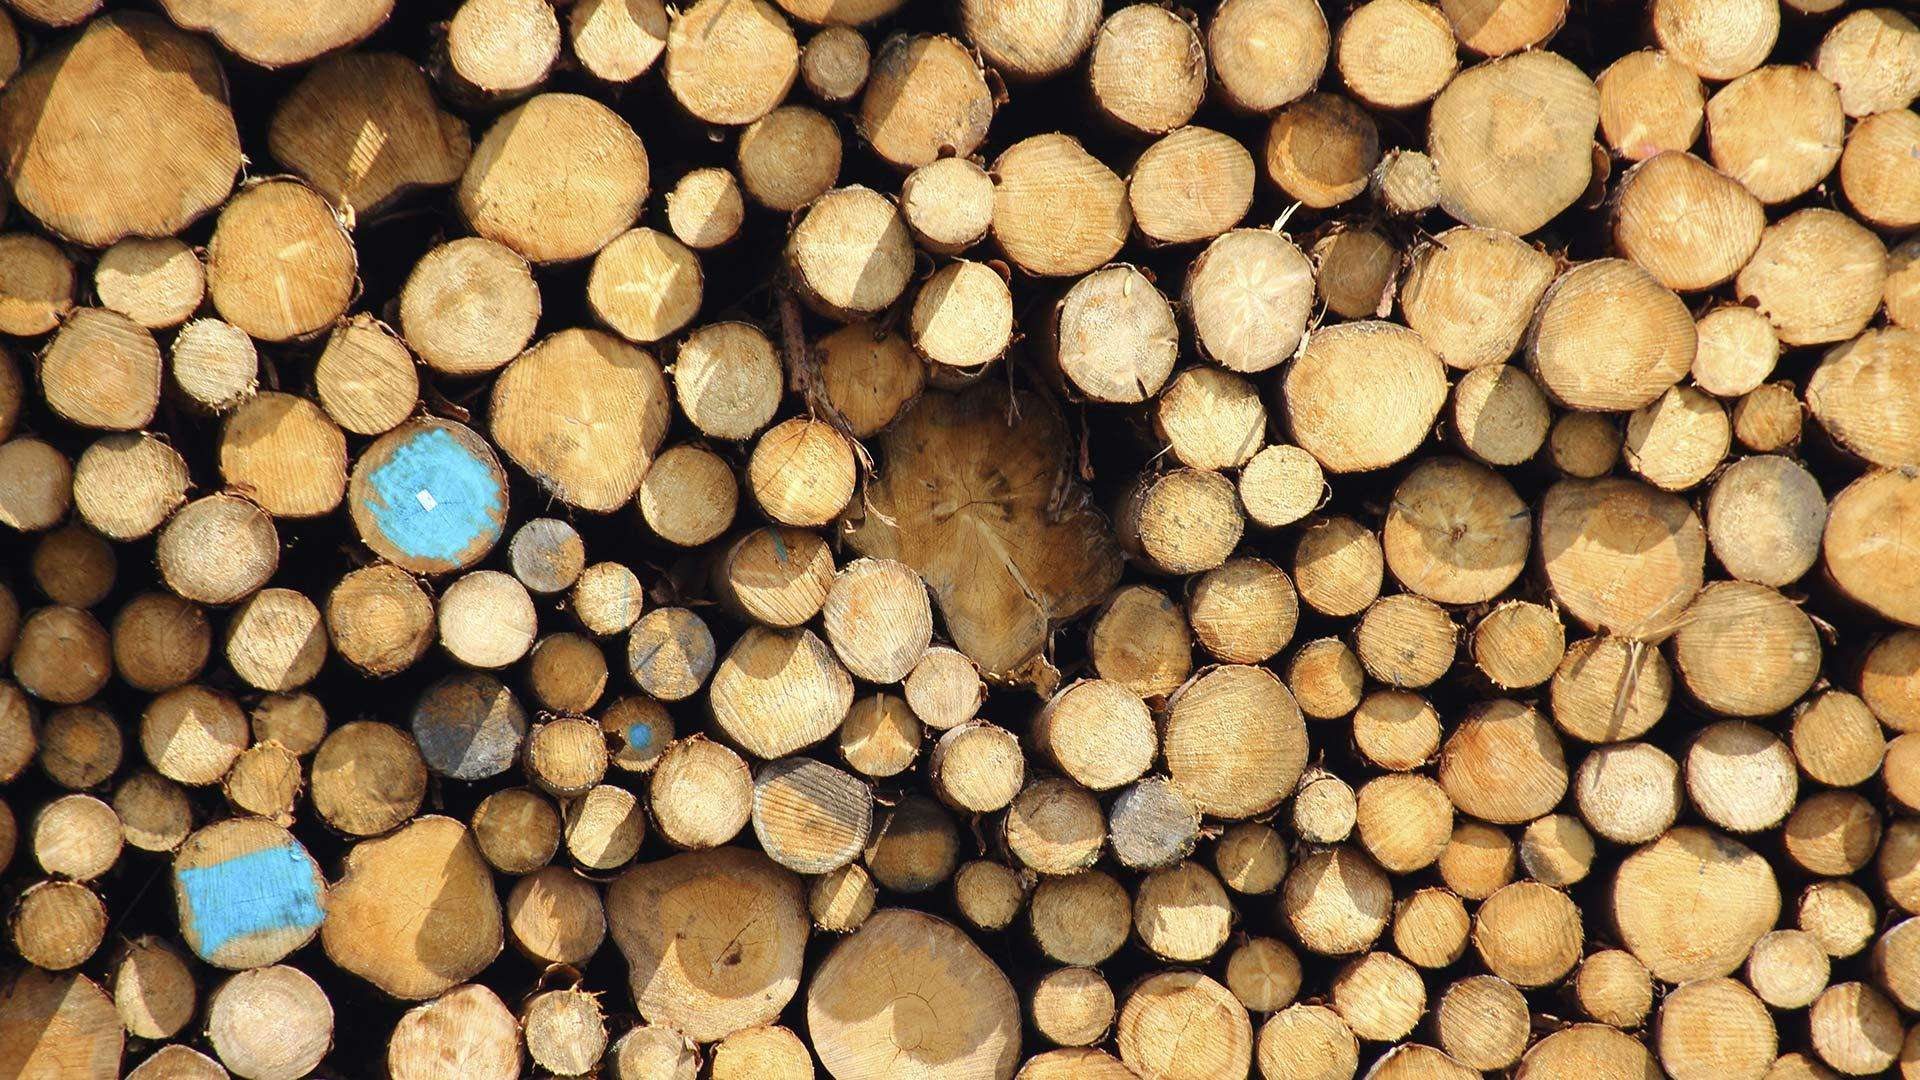 A photo of a pile of logs from tree felling